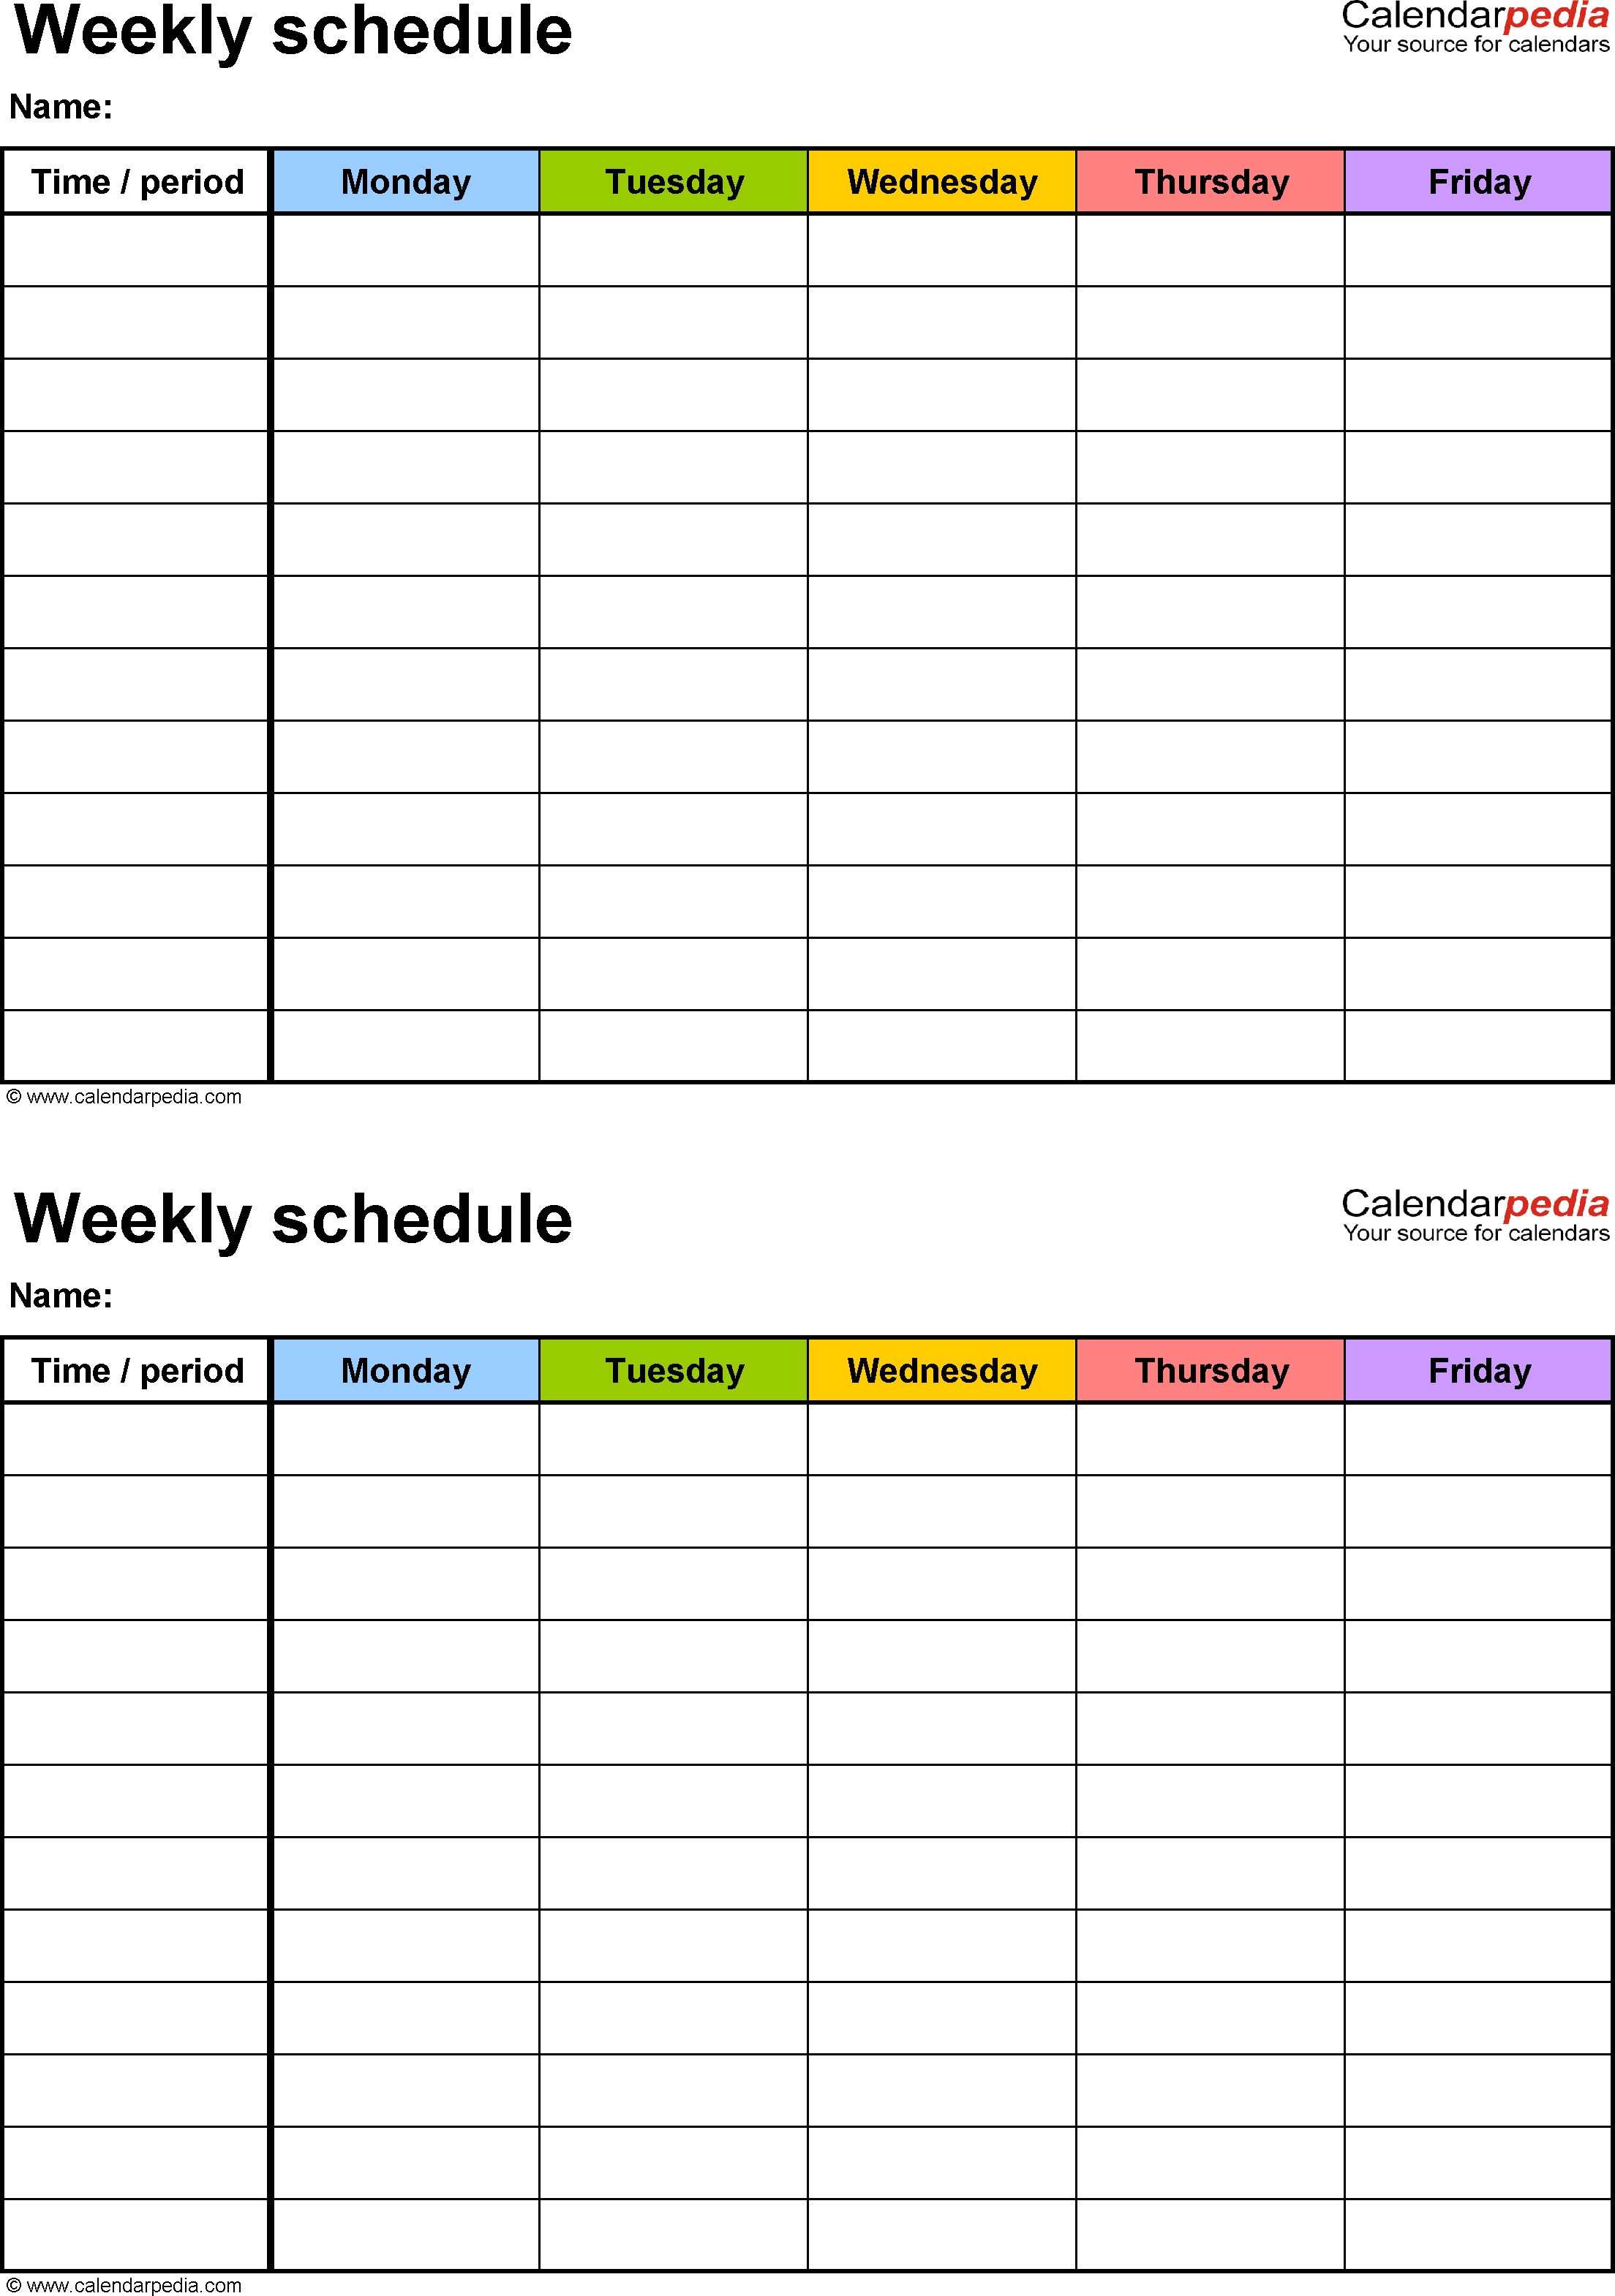 Weekly Schedule Template For Pdf Version 3: 2 Schedules On One Page regarding Free Printable Weekly Schedule Page